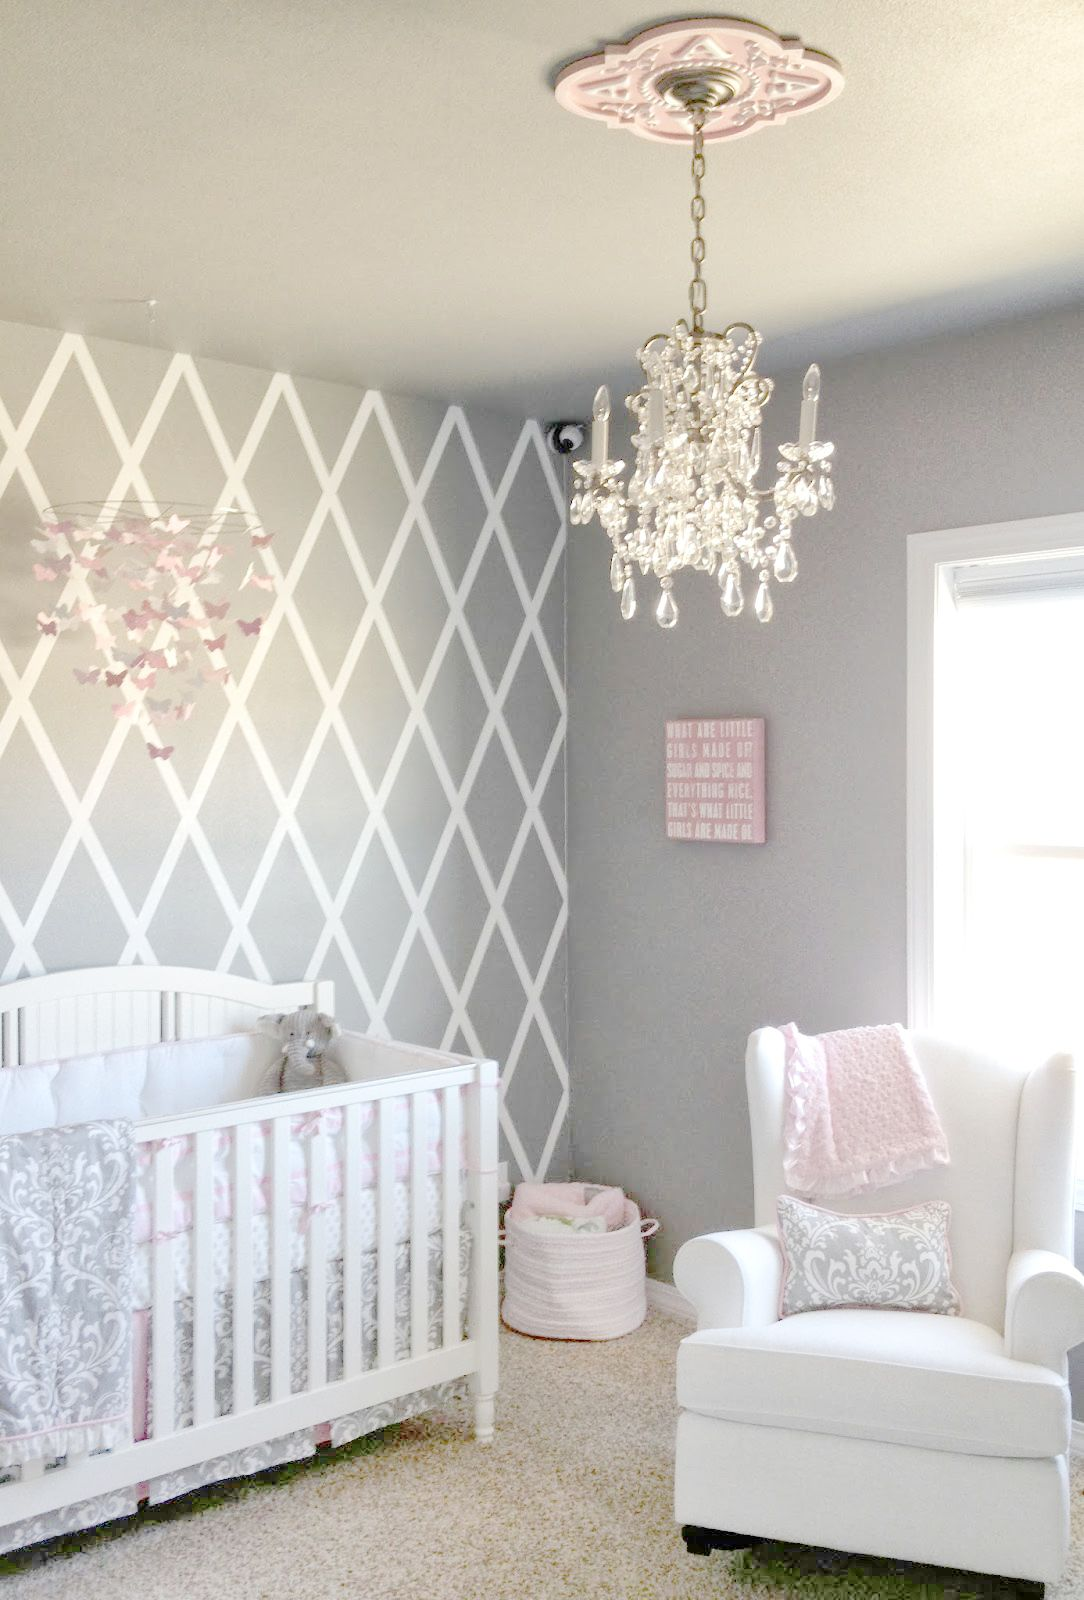 Beautiful Gray And Pink Nursery Features Our Stella Gray Baby Bedding  Collection! So Pretty For A Baby Girlu0027s Nursery!